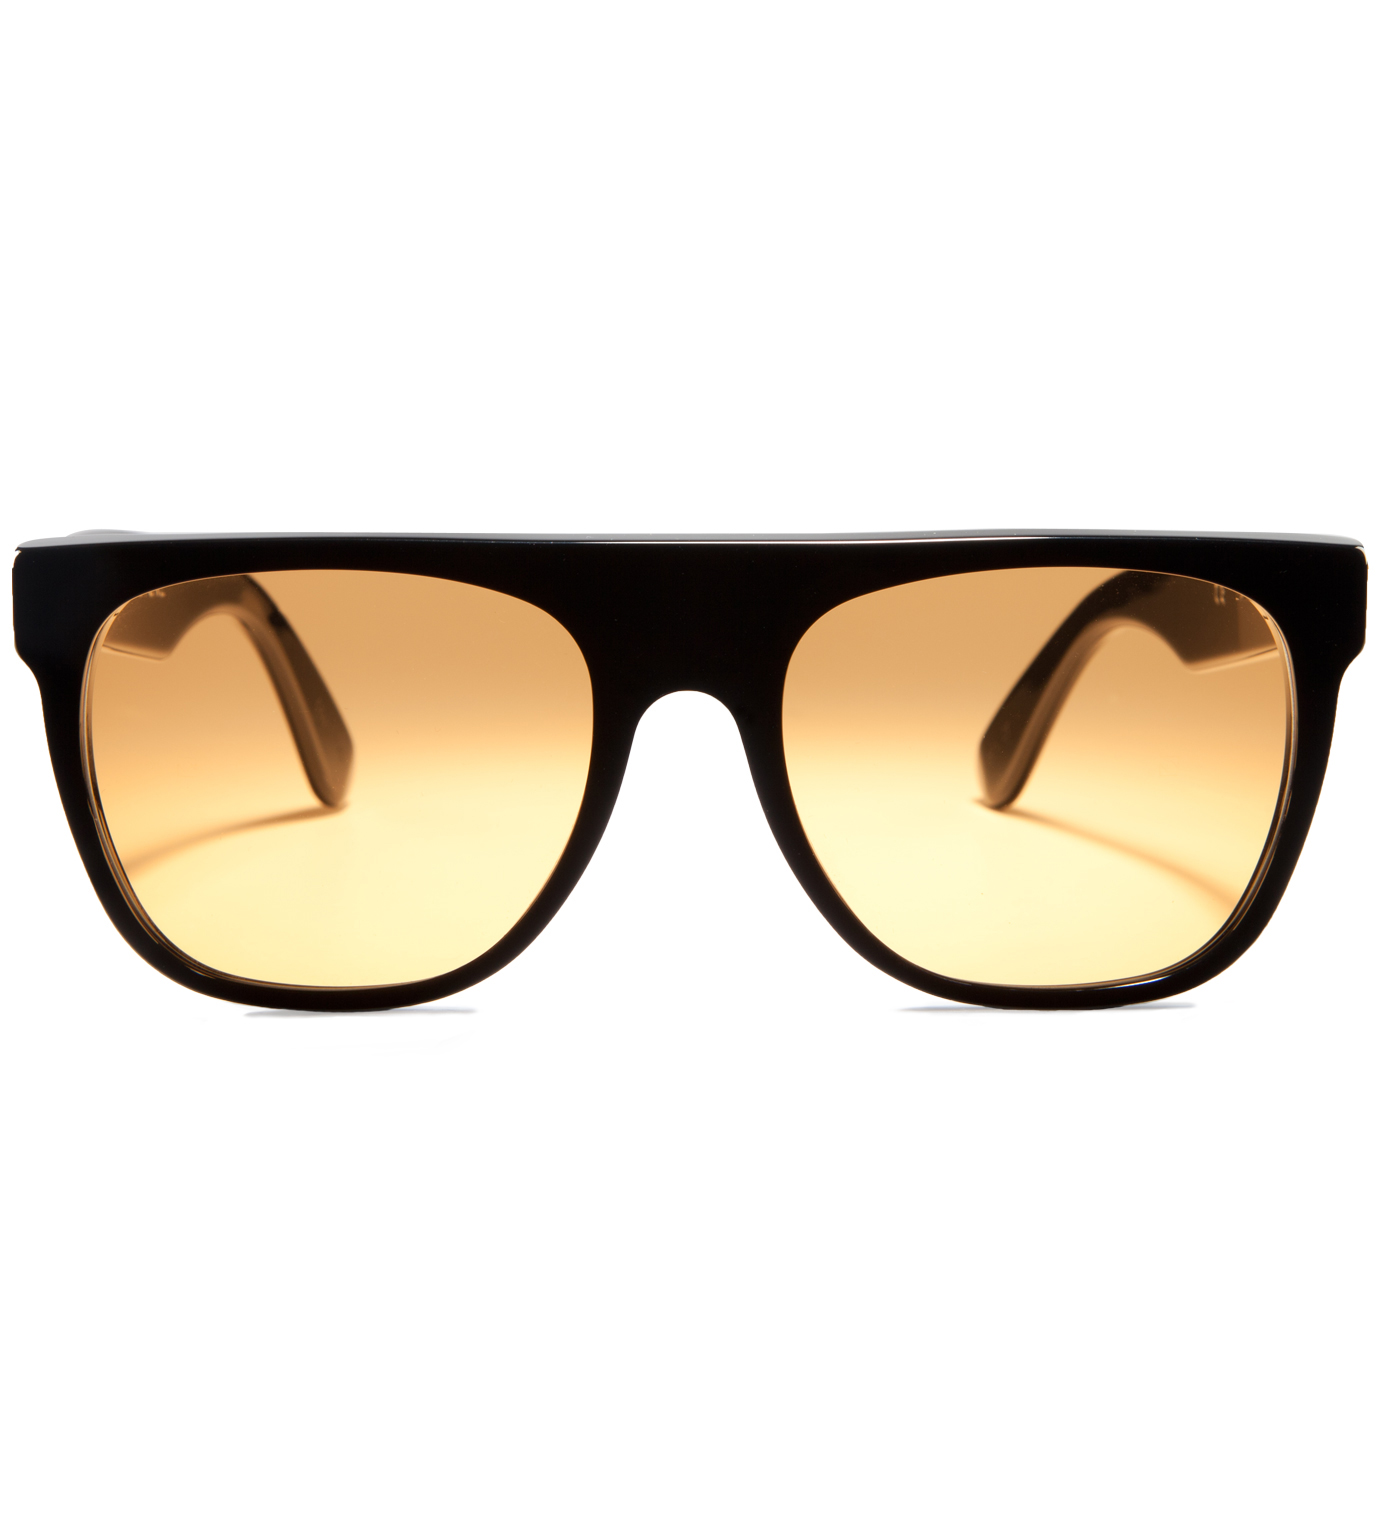 SUPER BY RETROSUPERFUTURE Flat Top Pilot Sunglasses